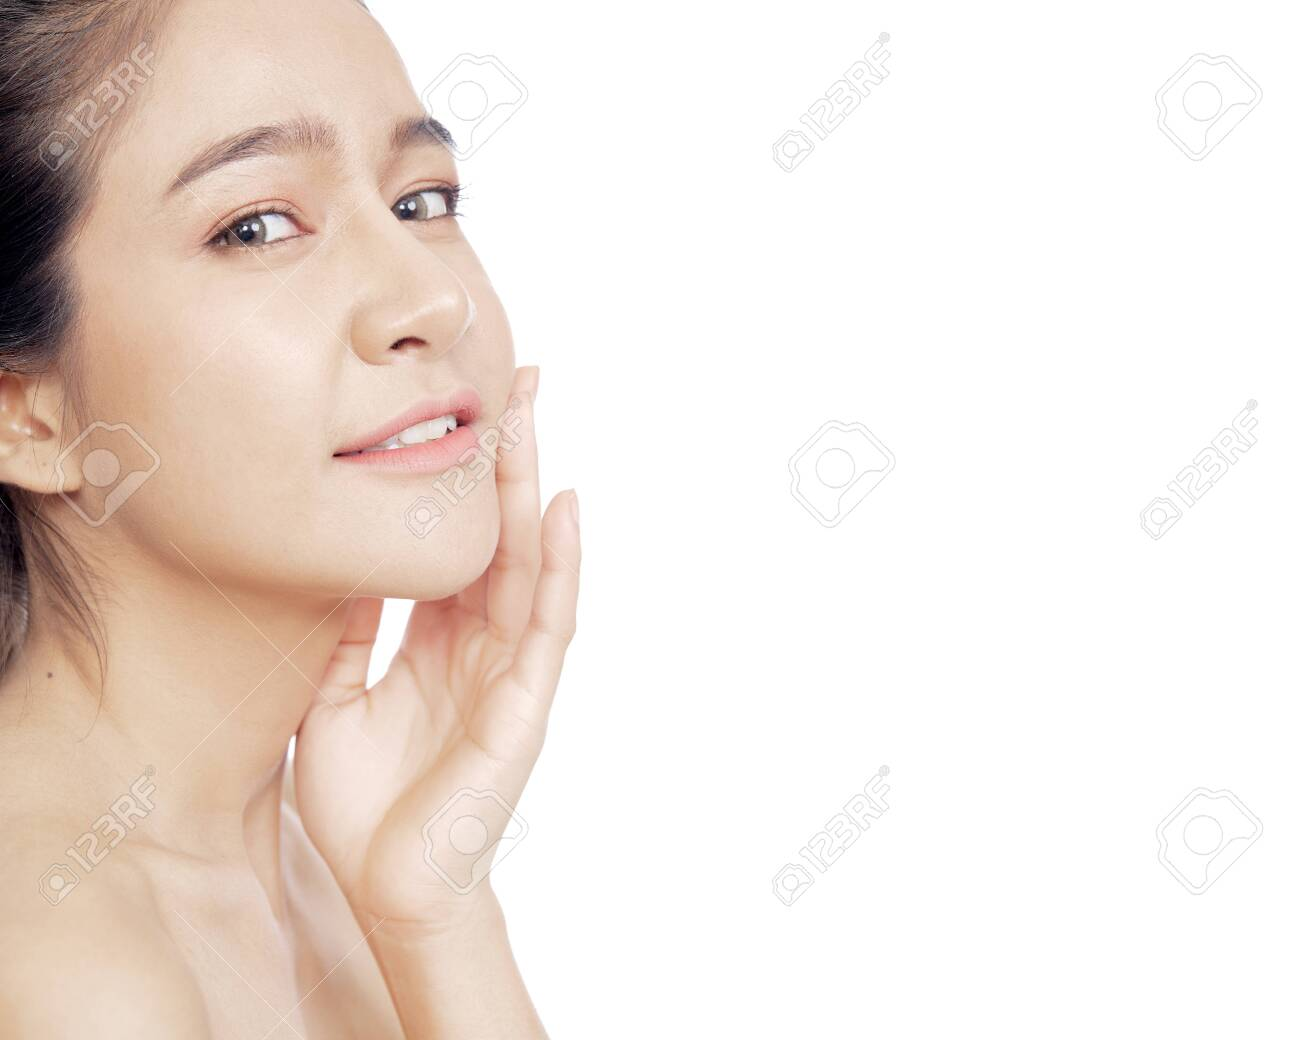 Close up young Thai woman beautiful face on white background for beauty and skin care concepts - 147504663